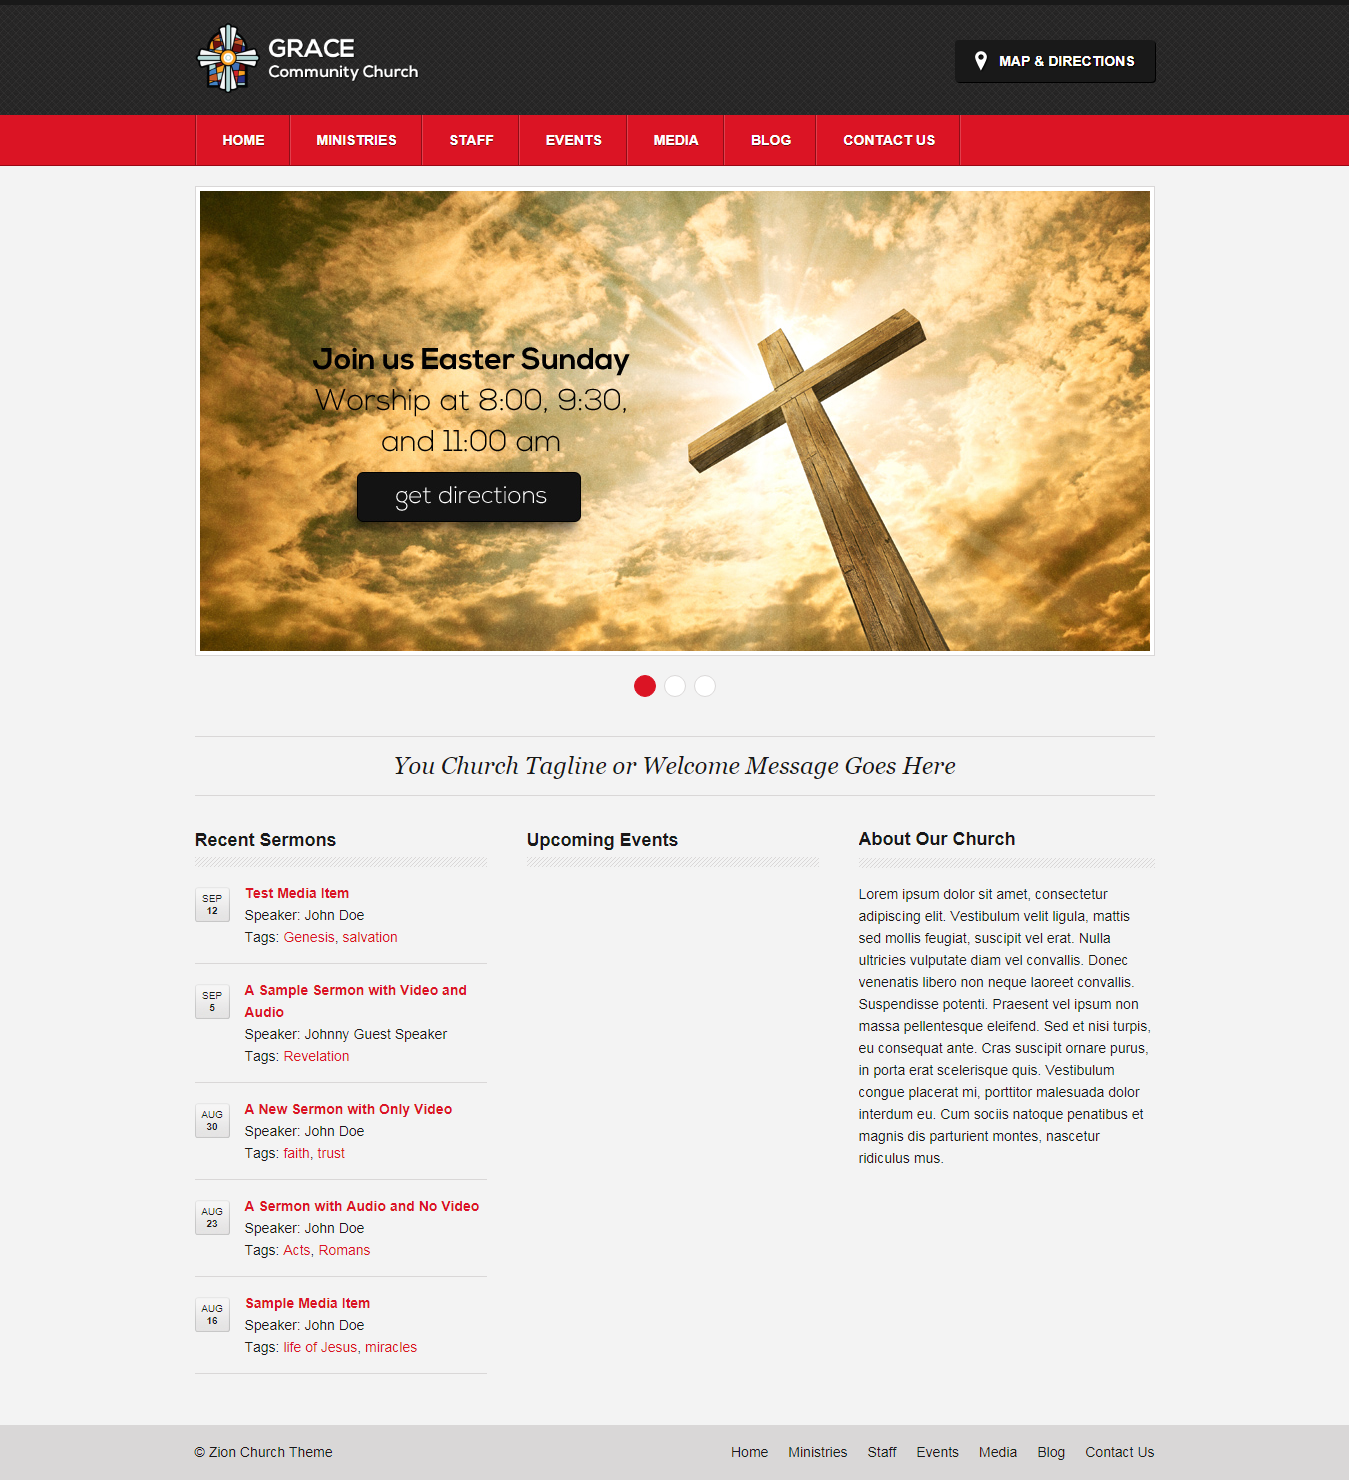 zion best free church wordpress theme - 10+ Best Free WordPress Church Themes